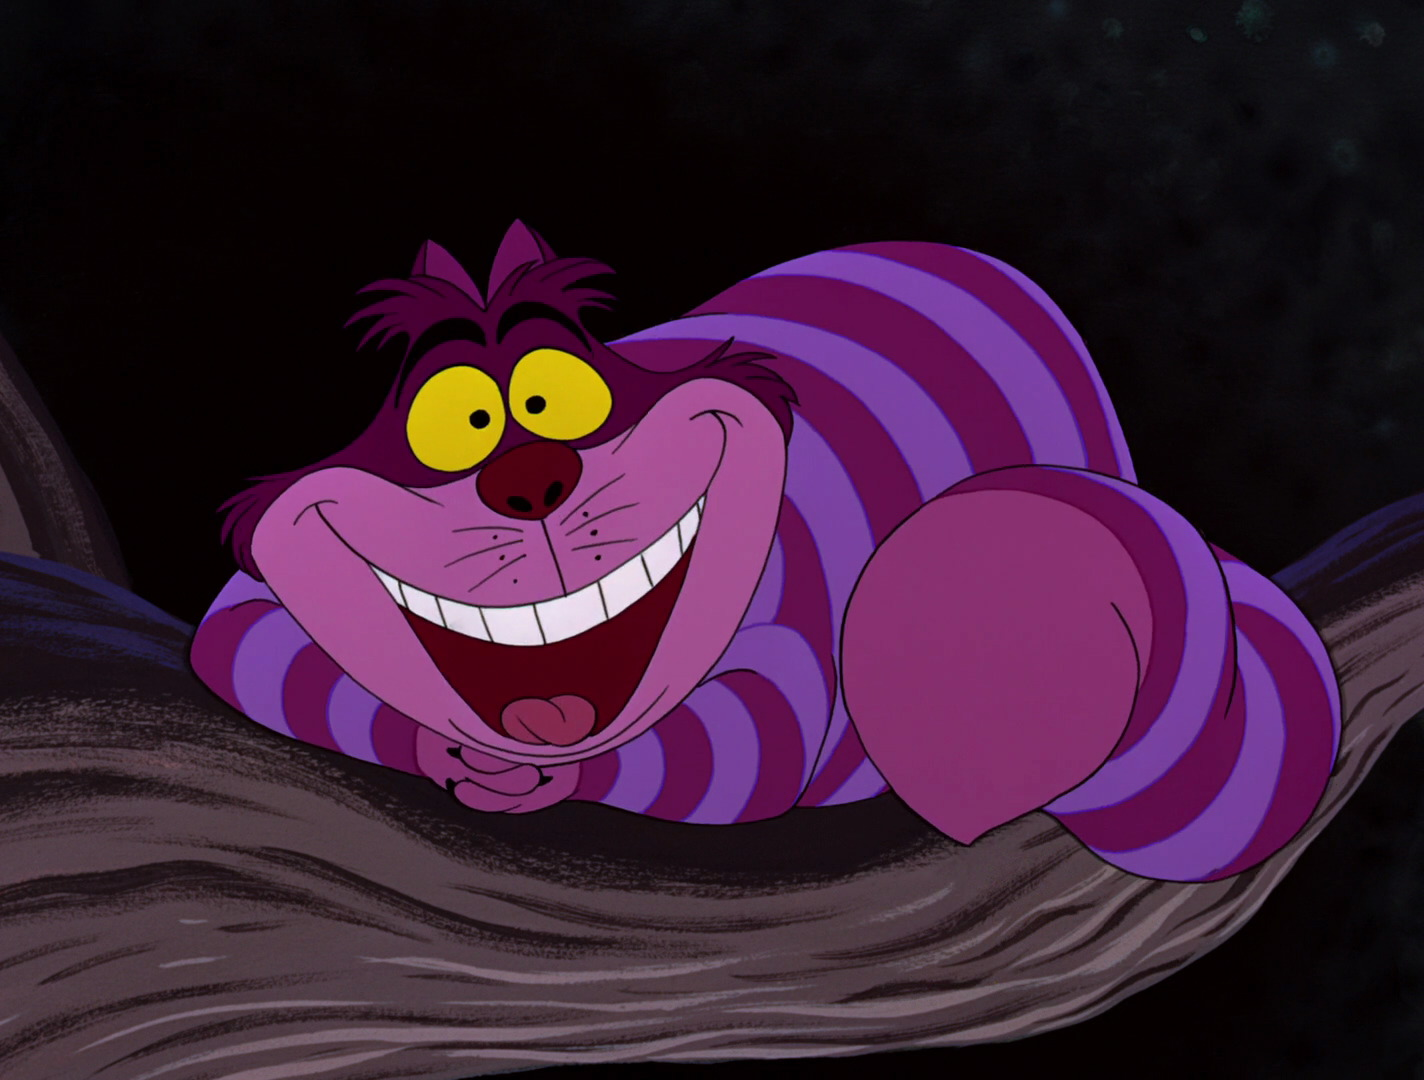 How to call the Cheshire Cat 93